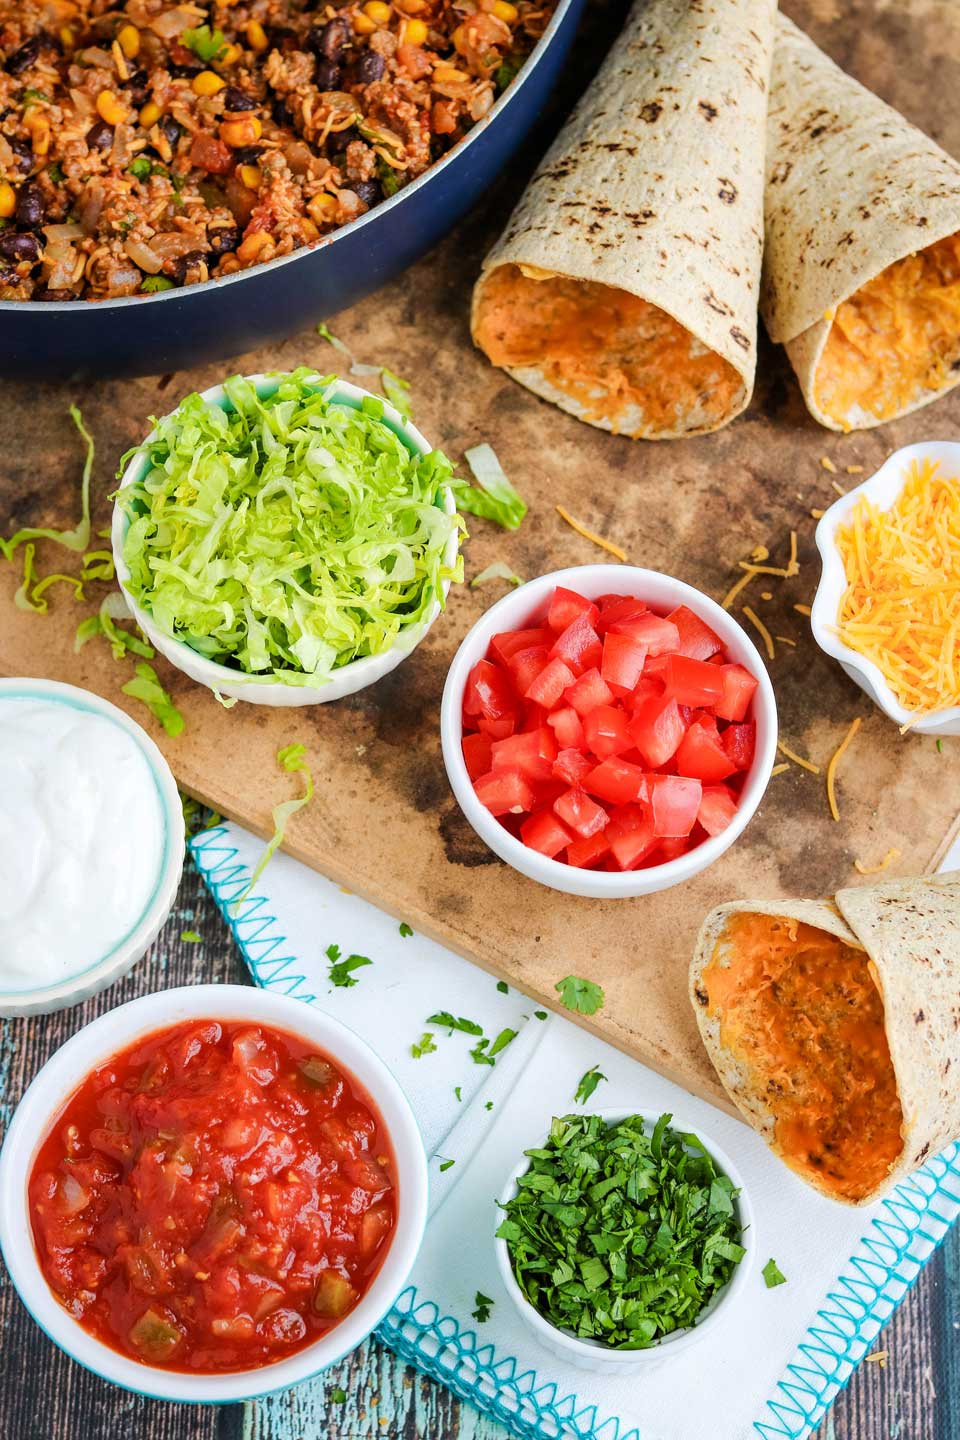 healthy toppings next to tortillas and pan of Mexican healthy ground beef recipe